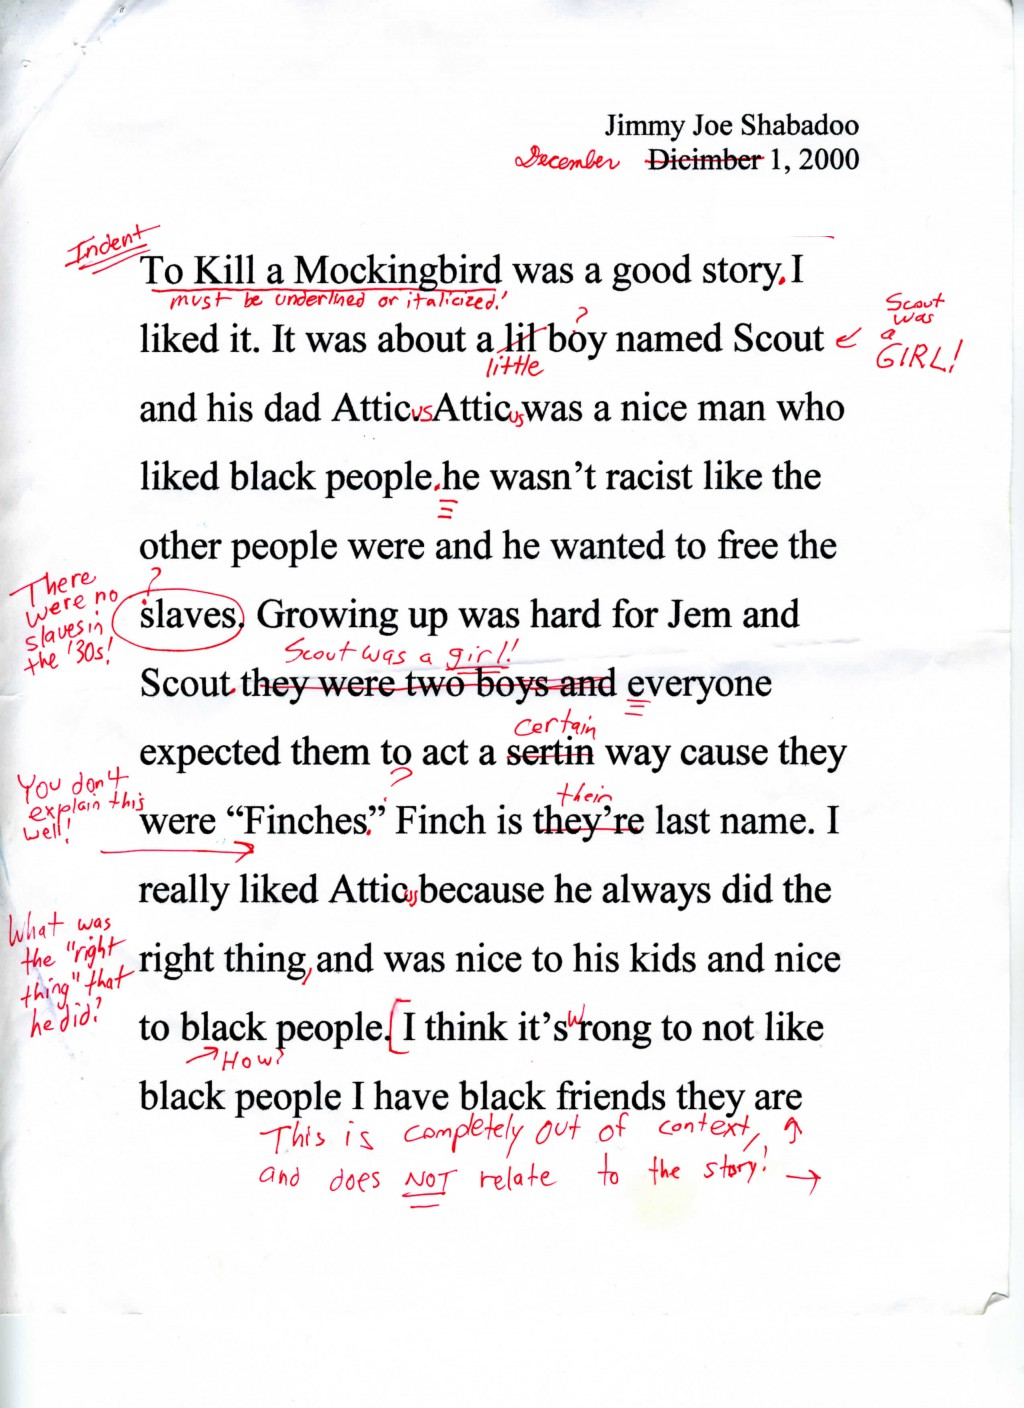 023 To Kill Mockingbird Parody Paper Essay Example Satire Fearsome Essays Satirical Topics For High School Examples On Gun Control Large